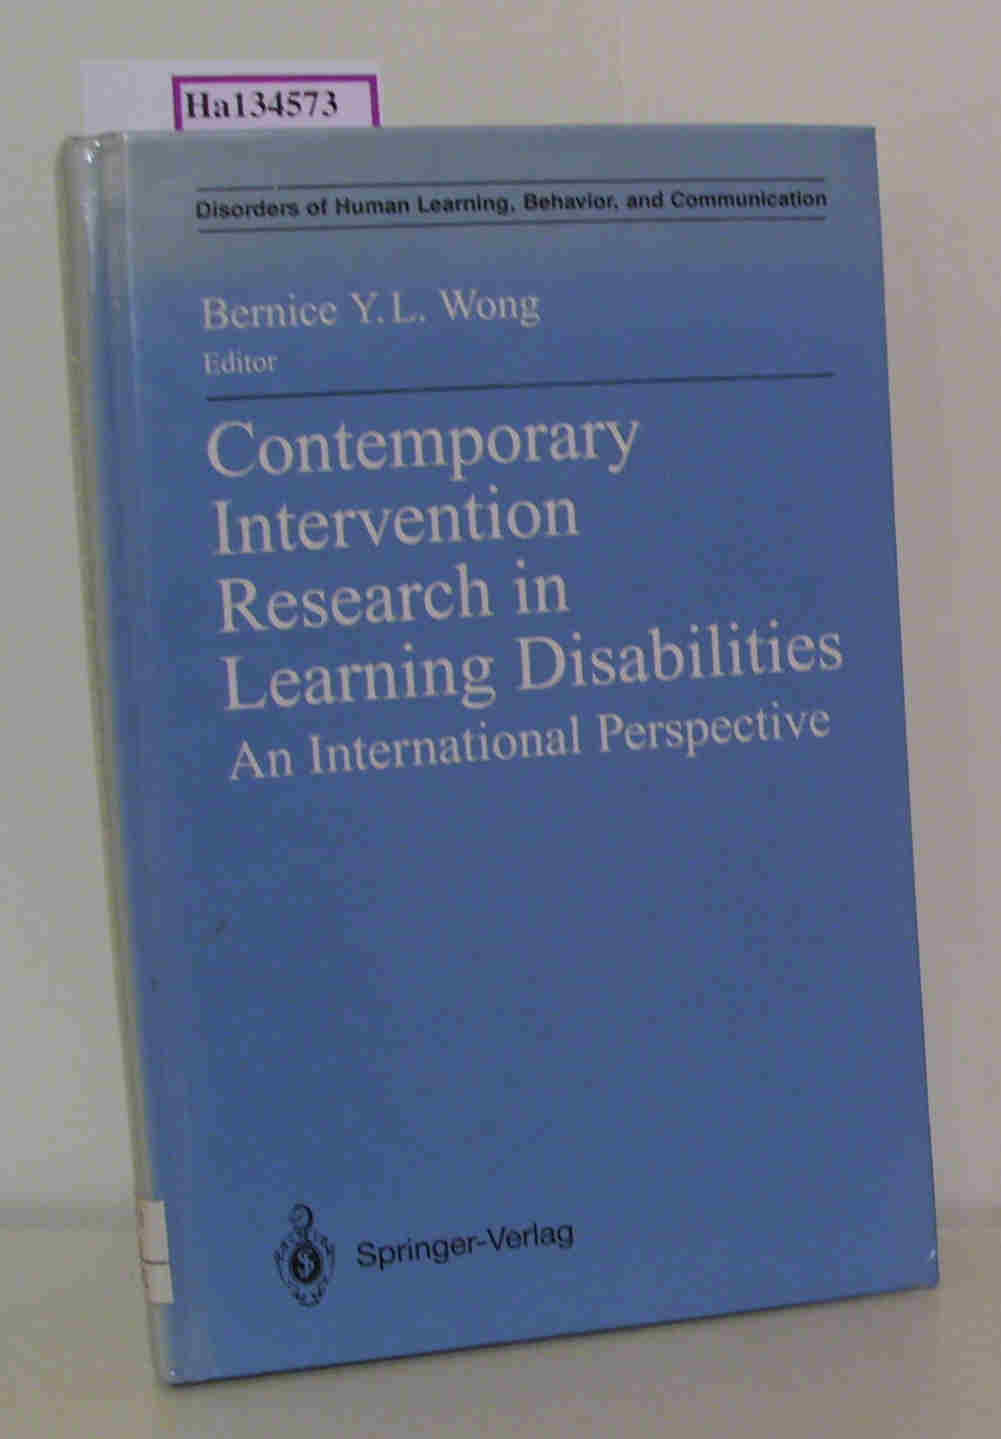 Contemporary Intervention Research in Learning Disabilities. An International Perspective. (Disorders of Human Learning, Behavior, and Communication).